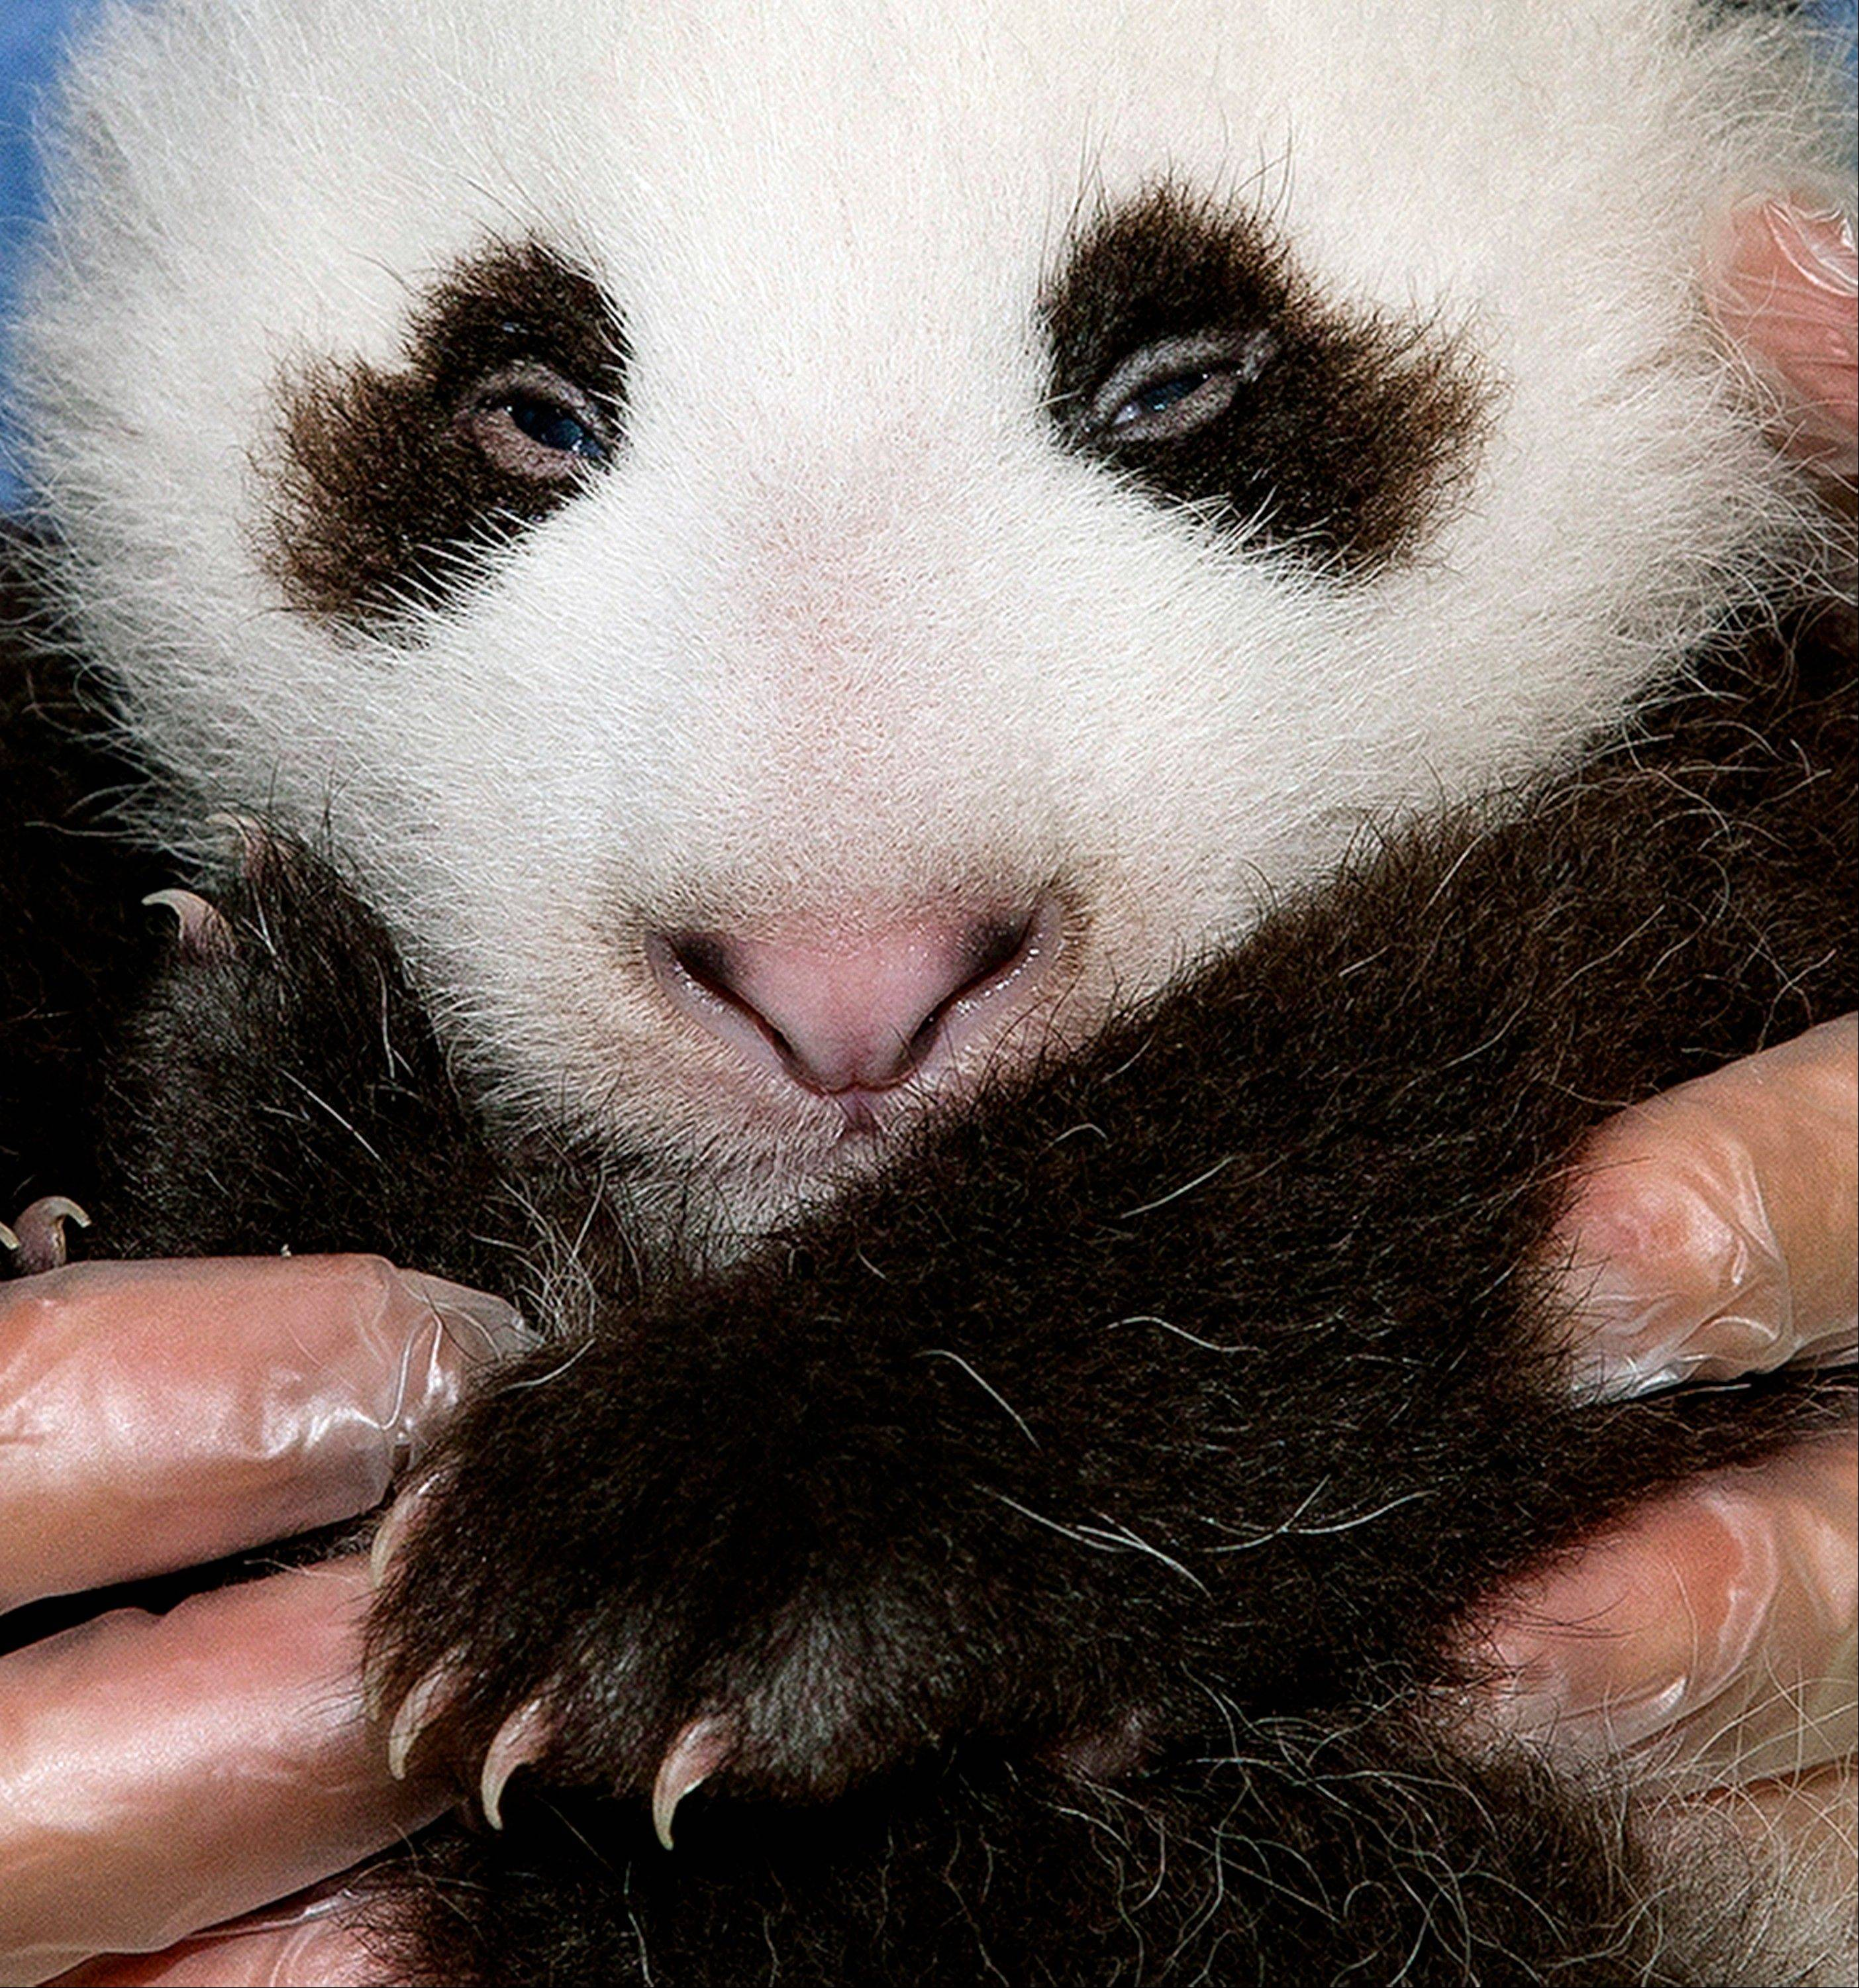 The San Diego Zoo has announced its 15-week-old giant panda has been named Xiao Liwu, which means Little Gift. The name was selected by the public, which voted on the zoo's website.